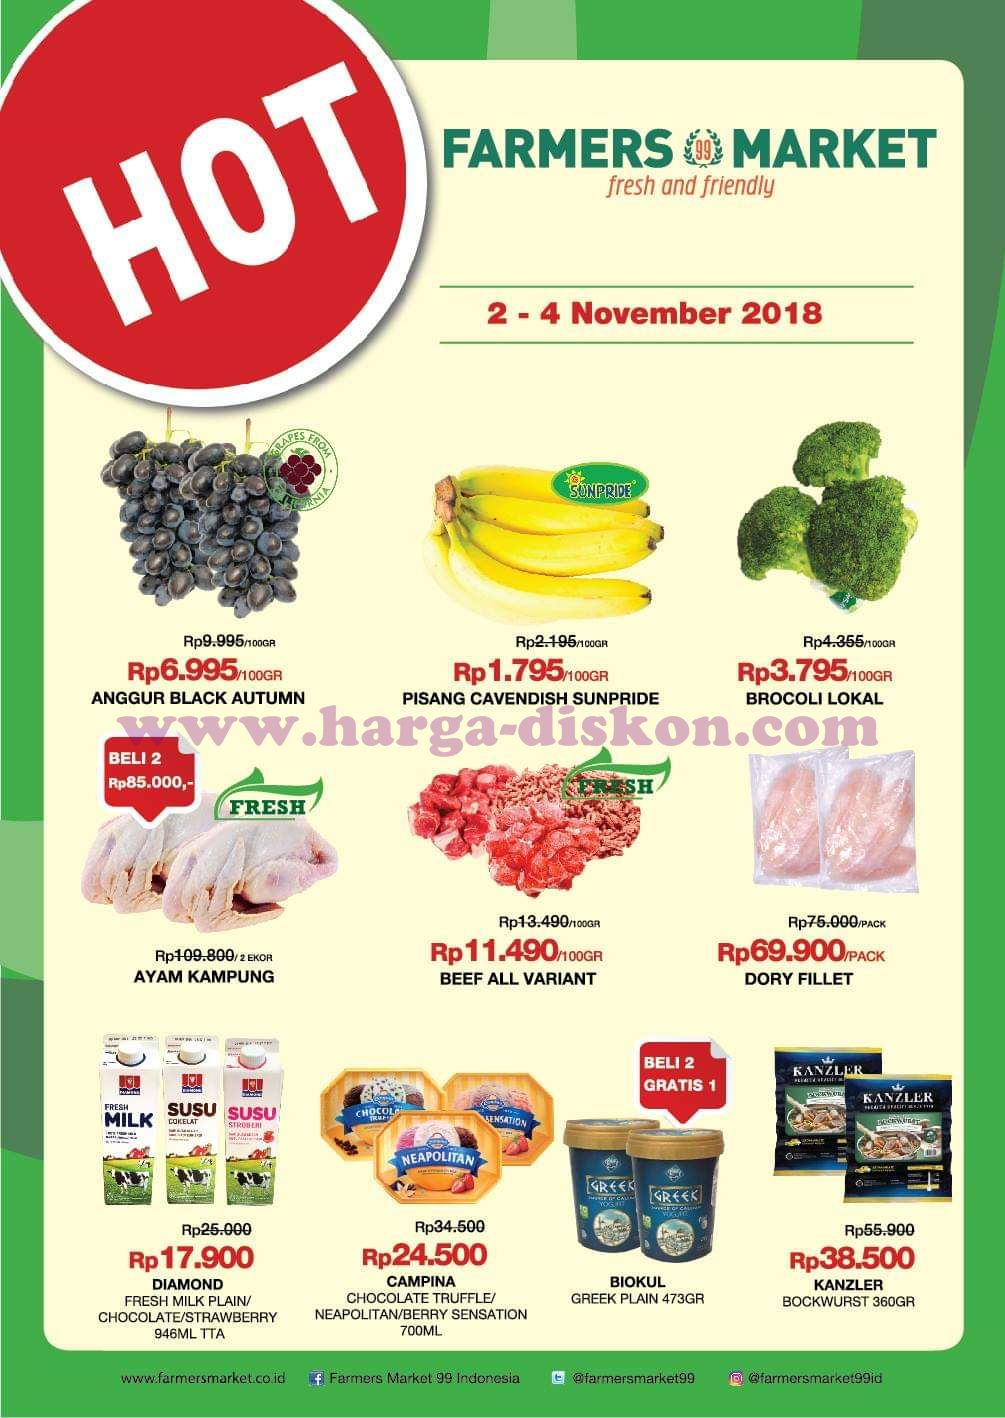 Promo Farmers Market Katalog Jsm Akhir Pekan 2 4 November 2018 News And Talking